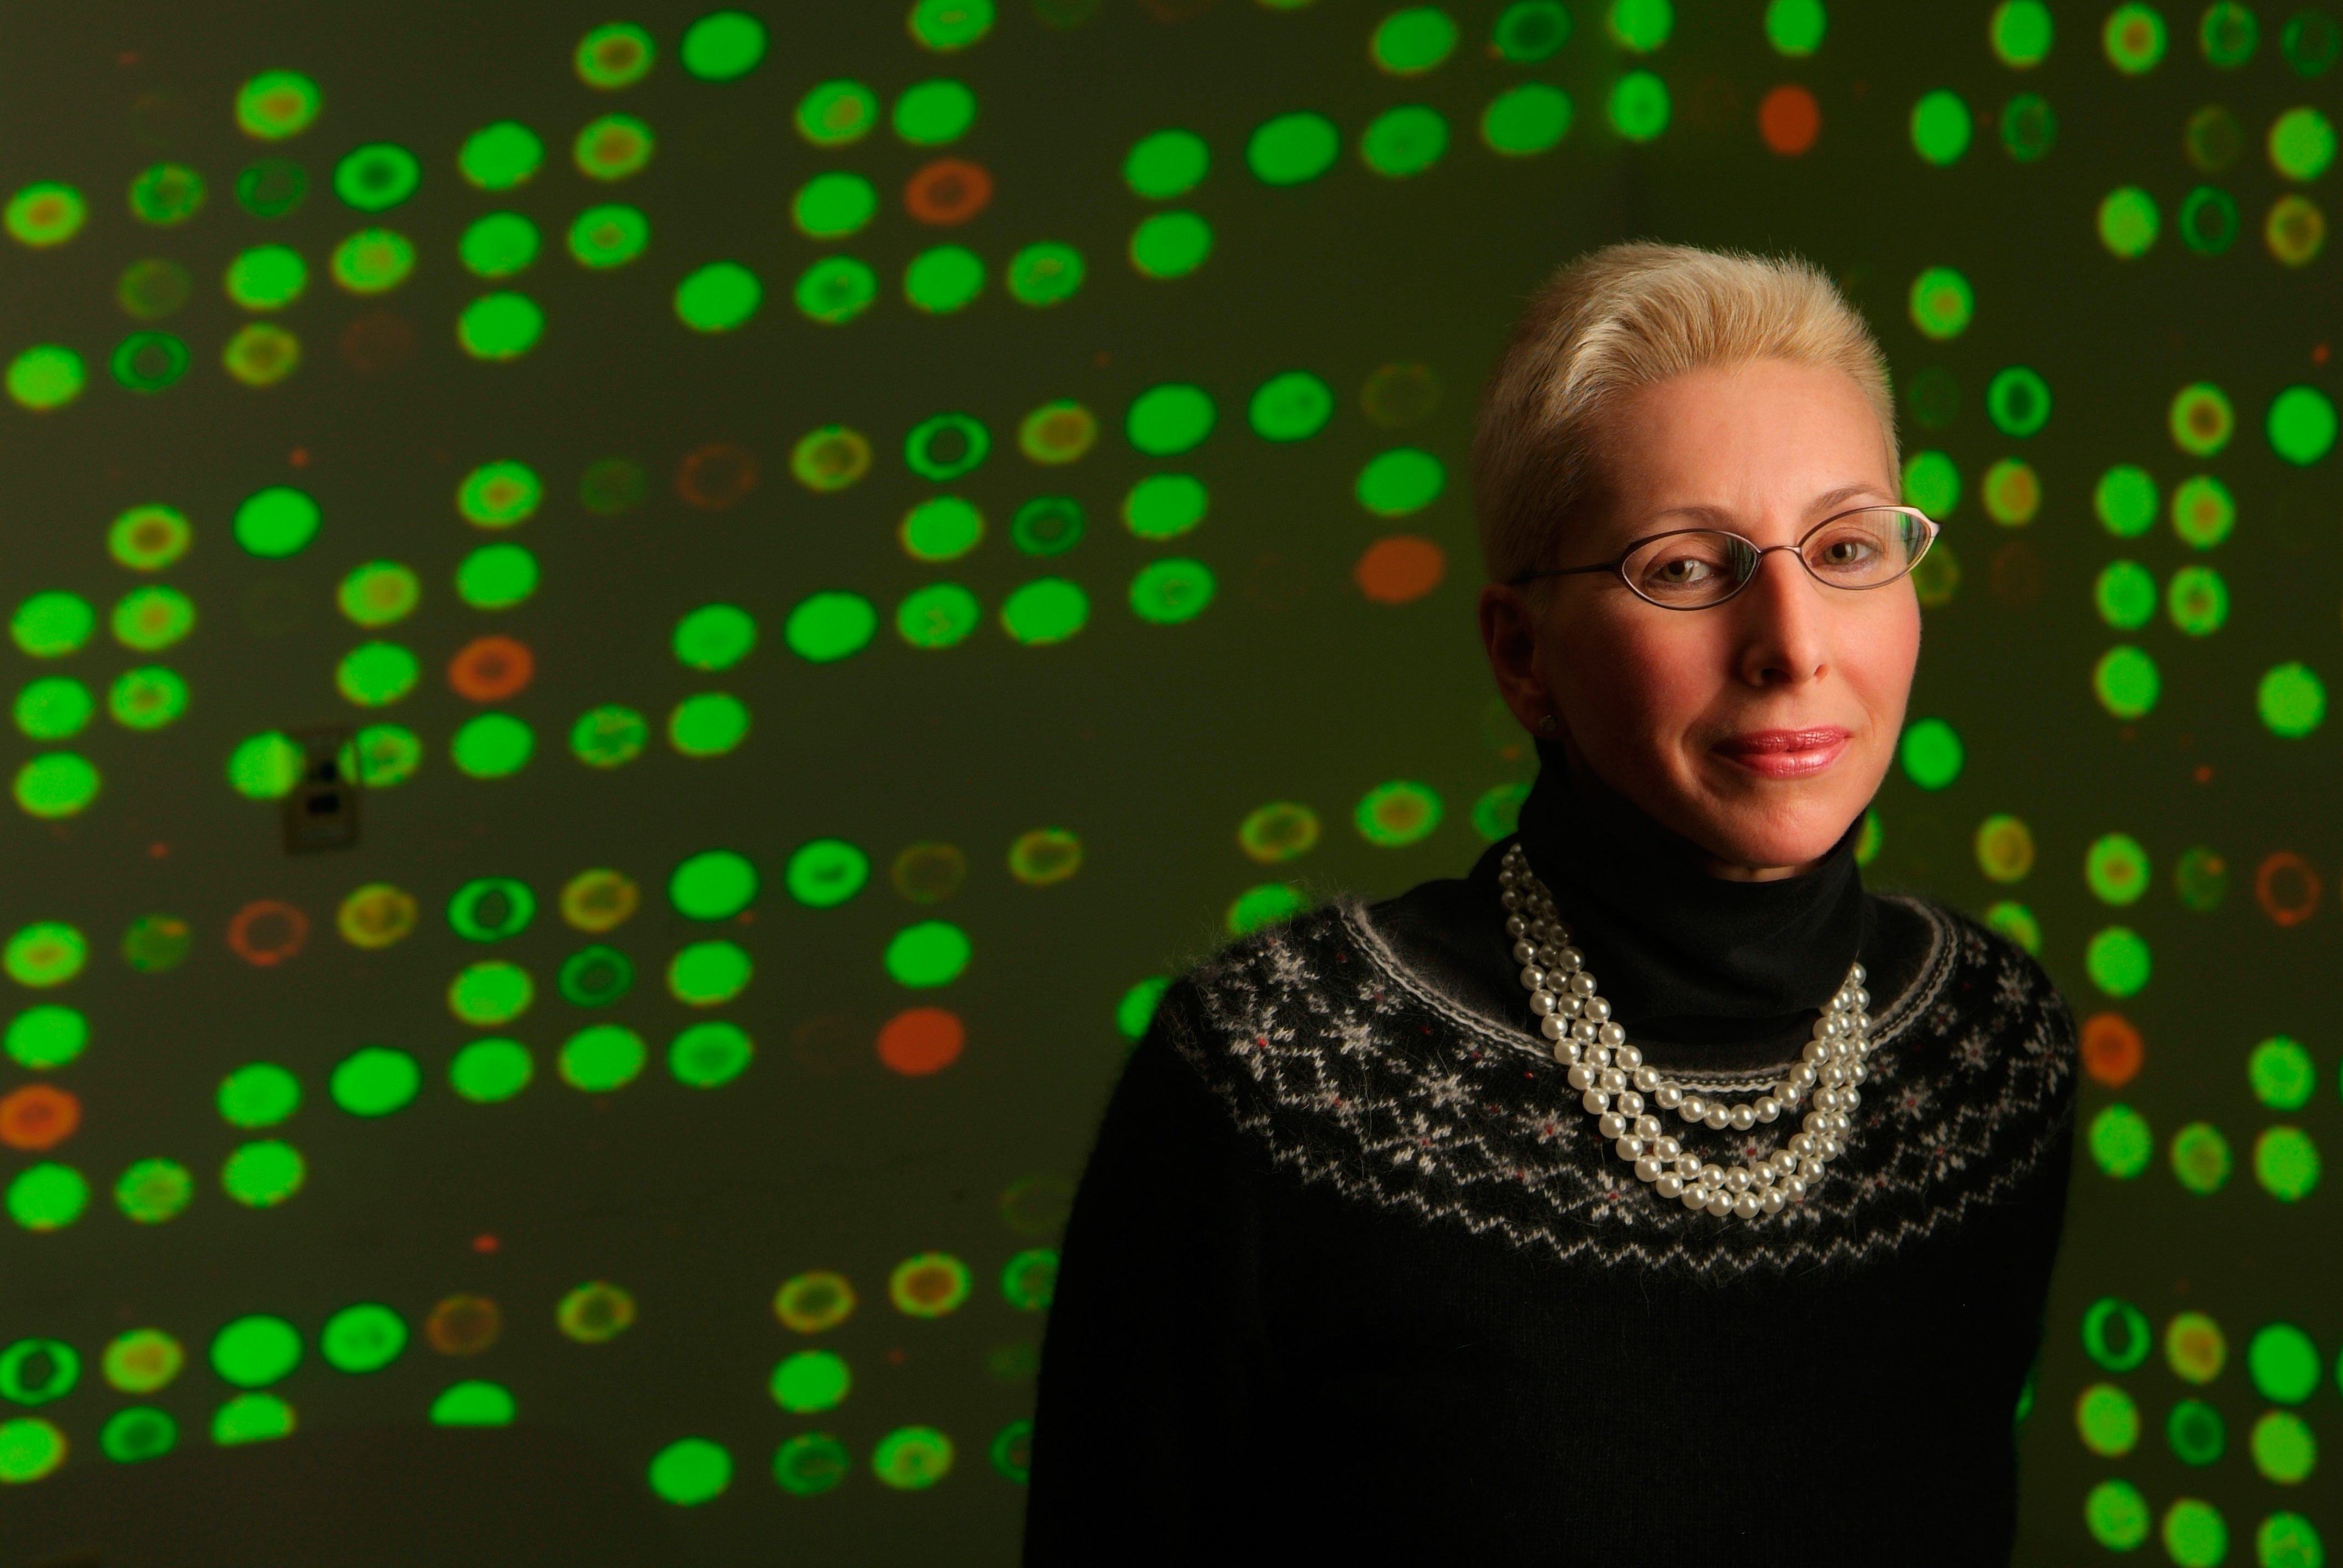 Norma J. Nowak, a professor of biochemistry, has been named executive director of the University at Buffalo's New York State Center of Excellence in Bioinformatics and Life Sciences.